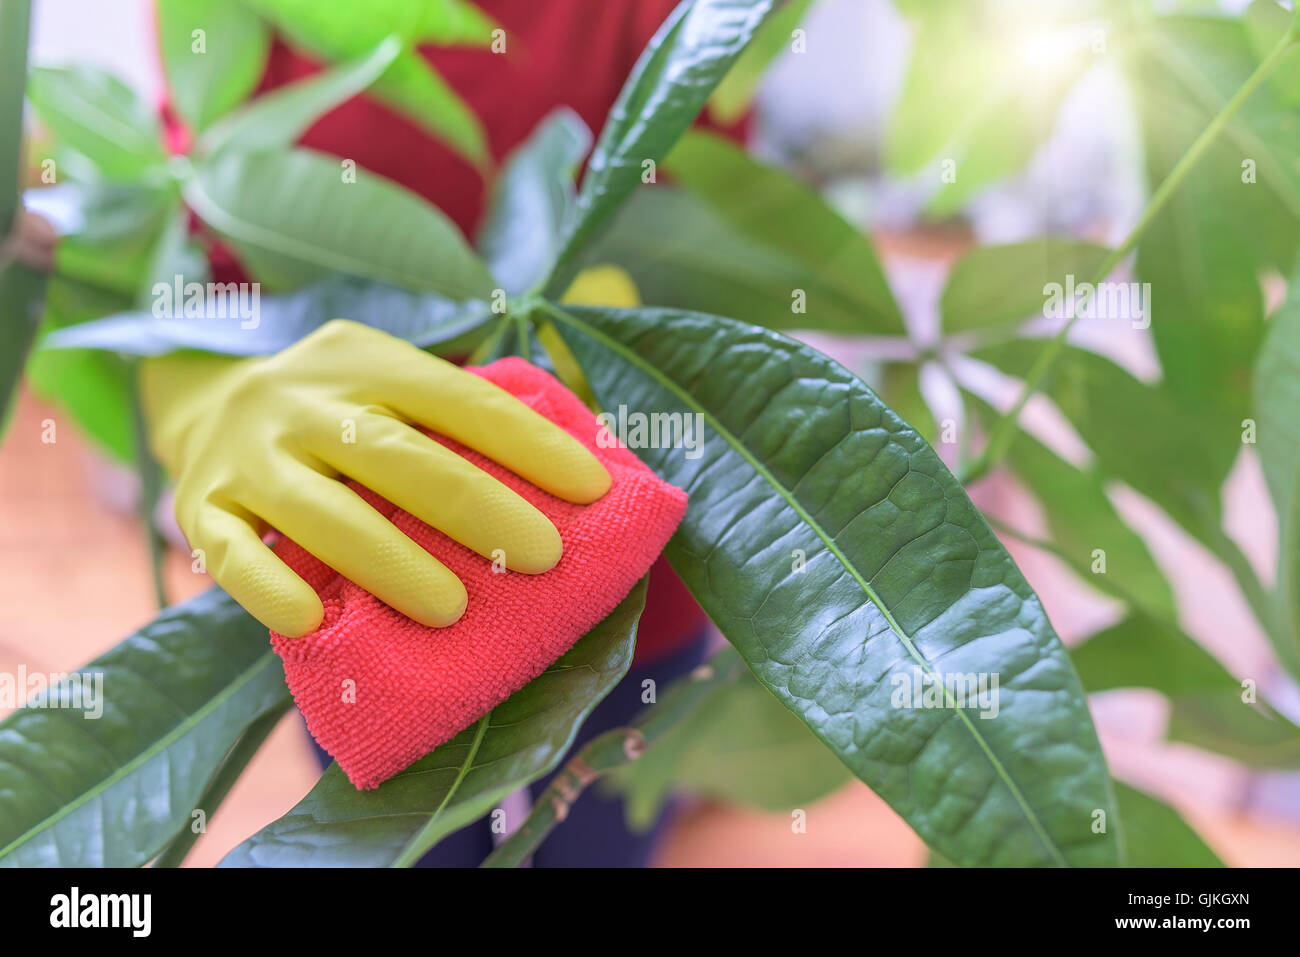 Female hands in gloves wipe dust from houseplants. - Stock Image